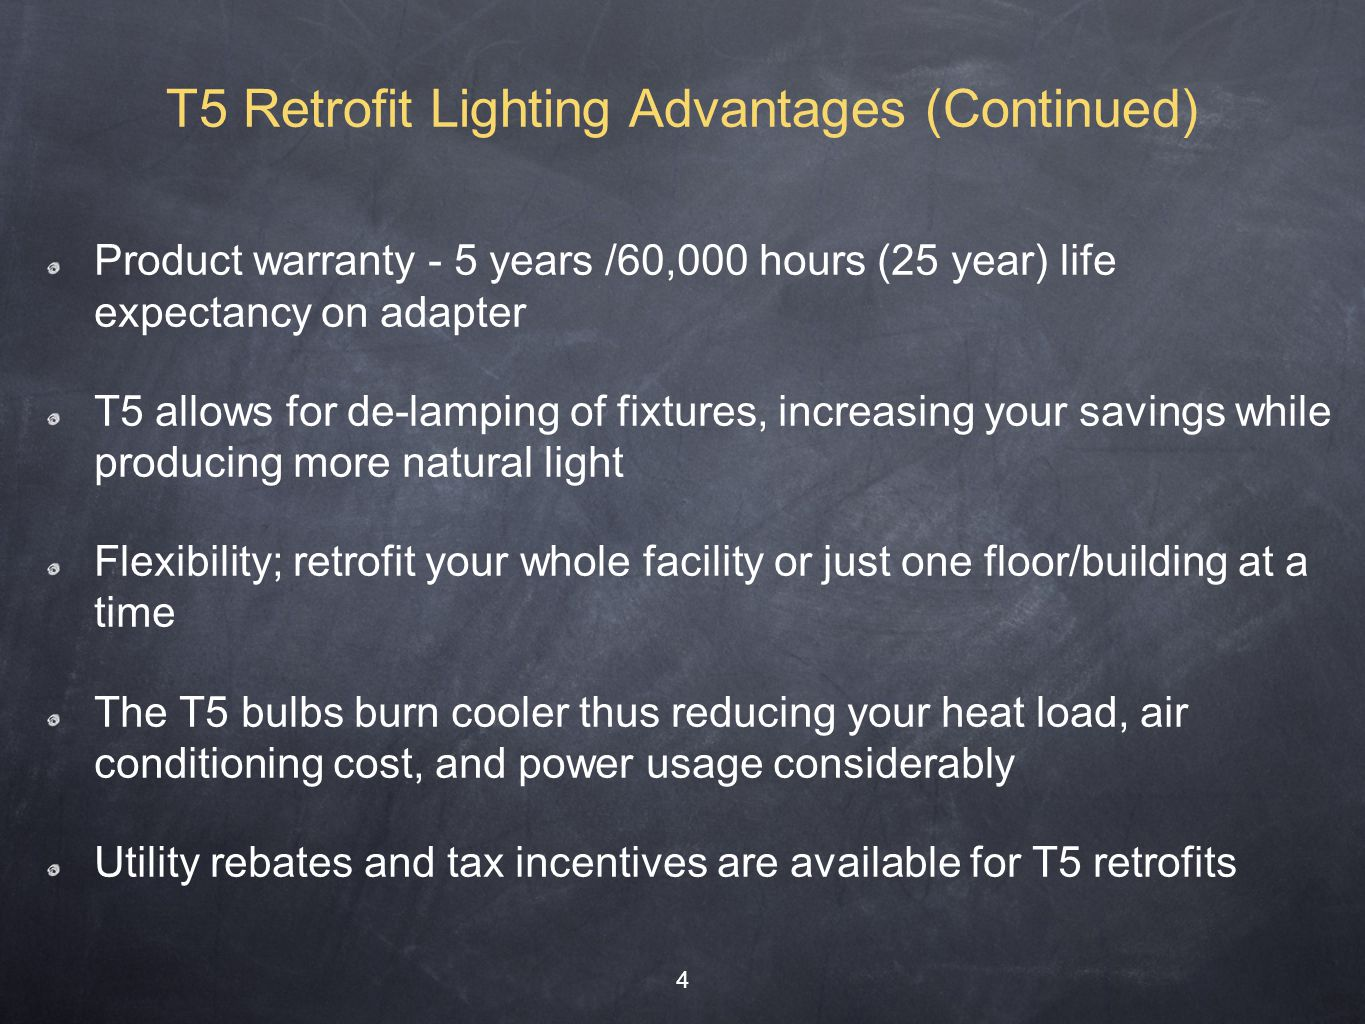 Product warranty - 5 years /60,000 hours (25 year) life expectancy on adapter T5 allows for de-lamping of fixtures, increasing your savings while producing more natural light Flexibility; retrofit your whole facility or just one floor/building at a time The T5 bulbs burn cooler thus reducing your heat load, air conditioning cost, and power usage considerably Utility rebates and tax incentives are available for T5 retrofits 4 T5 Retrofit Lighting Advantages (Continued)